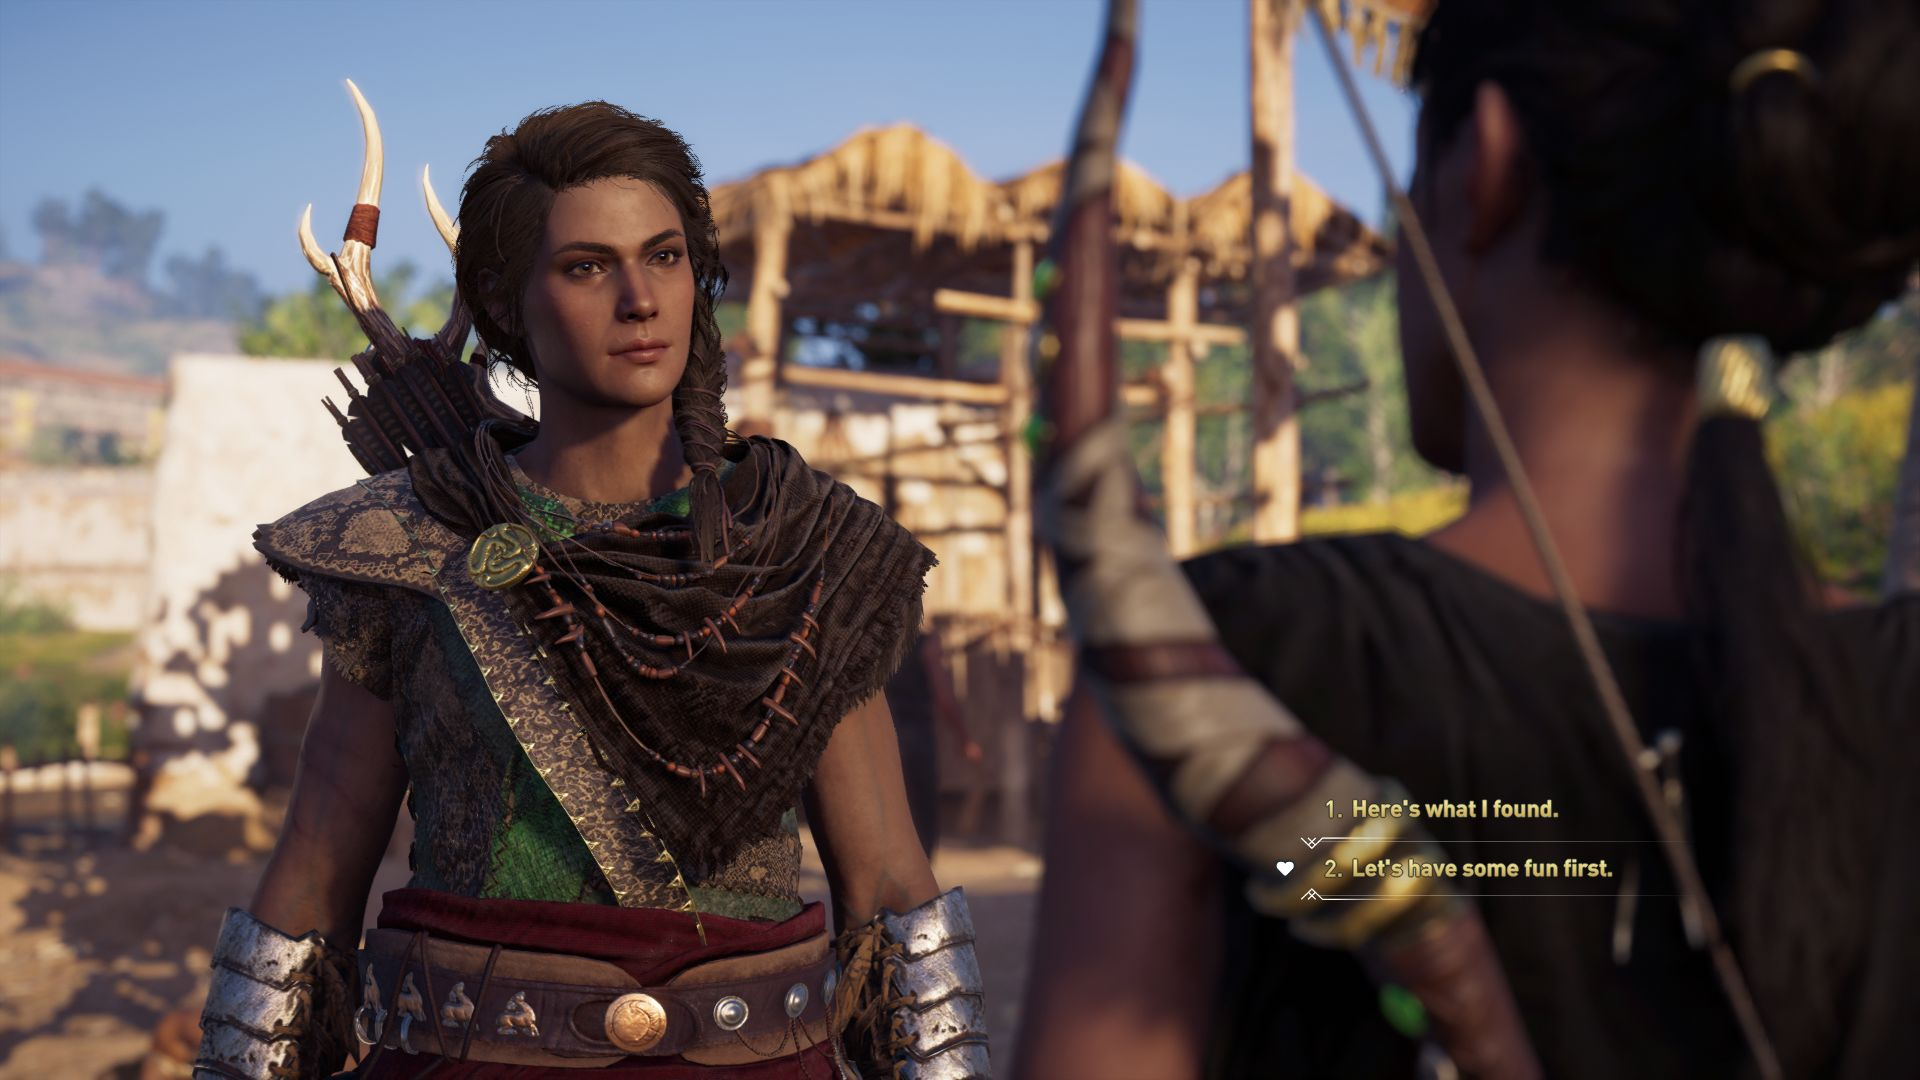 Ubisoft S Homophobia Driven Narrative Angers Assassin S Creed